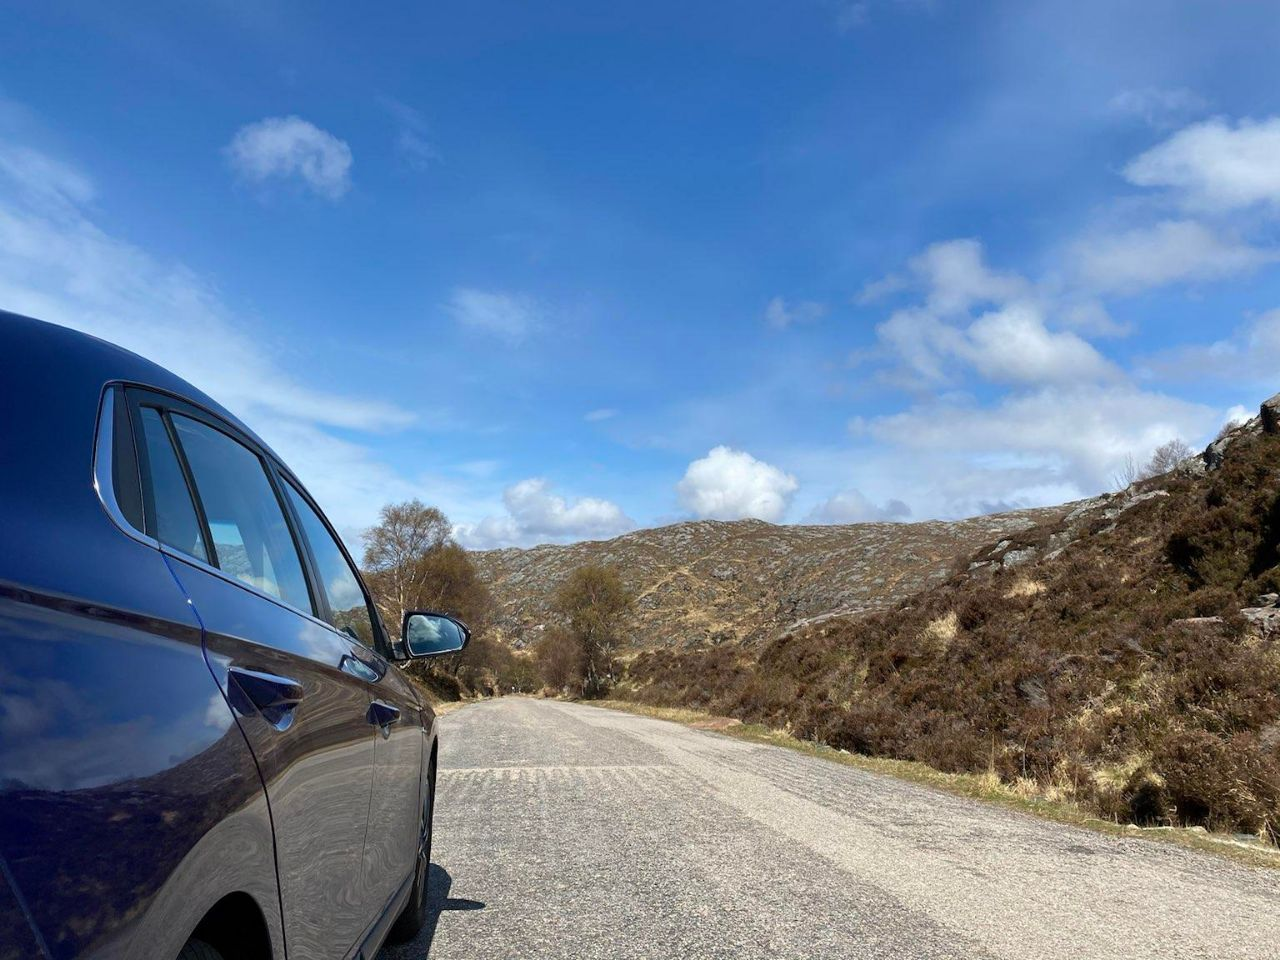 Blue car sat the side of an empty single carriage-road. Open skies light up a heather-covered hill